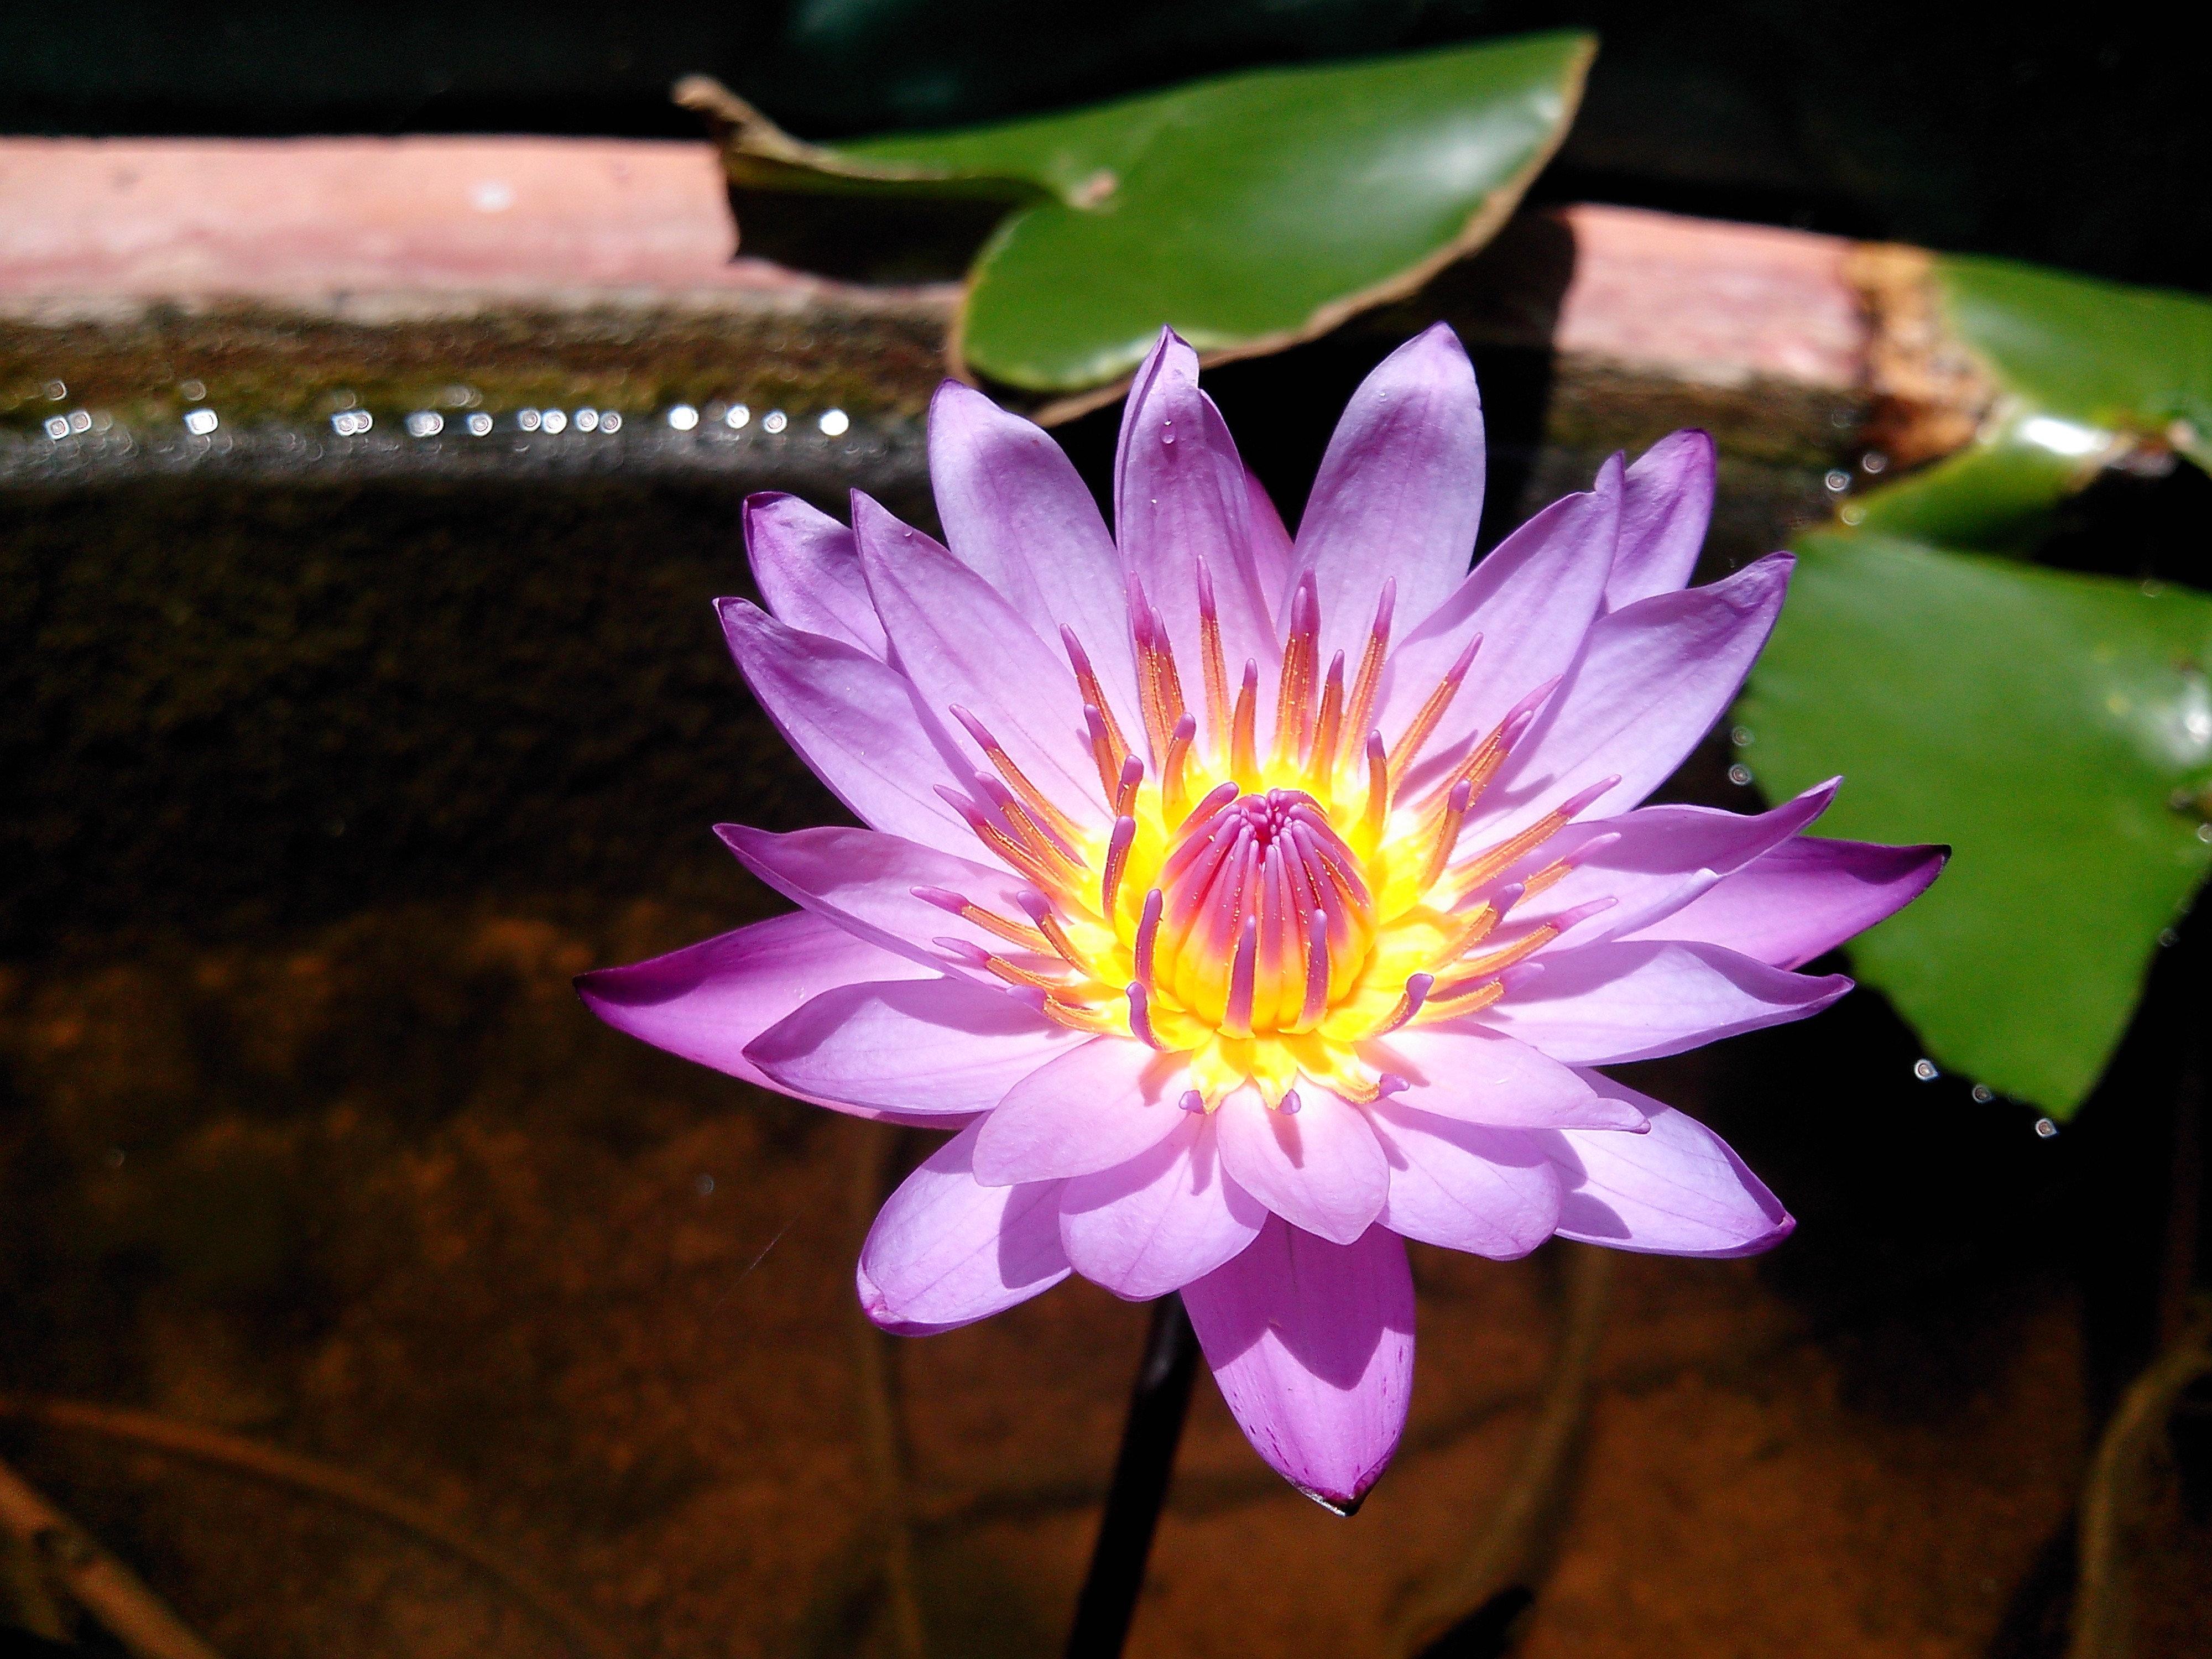 Giant Water Lily sprouting a flower